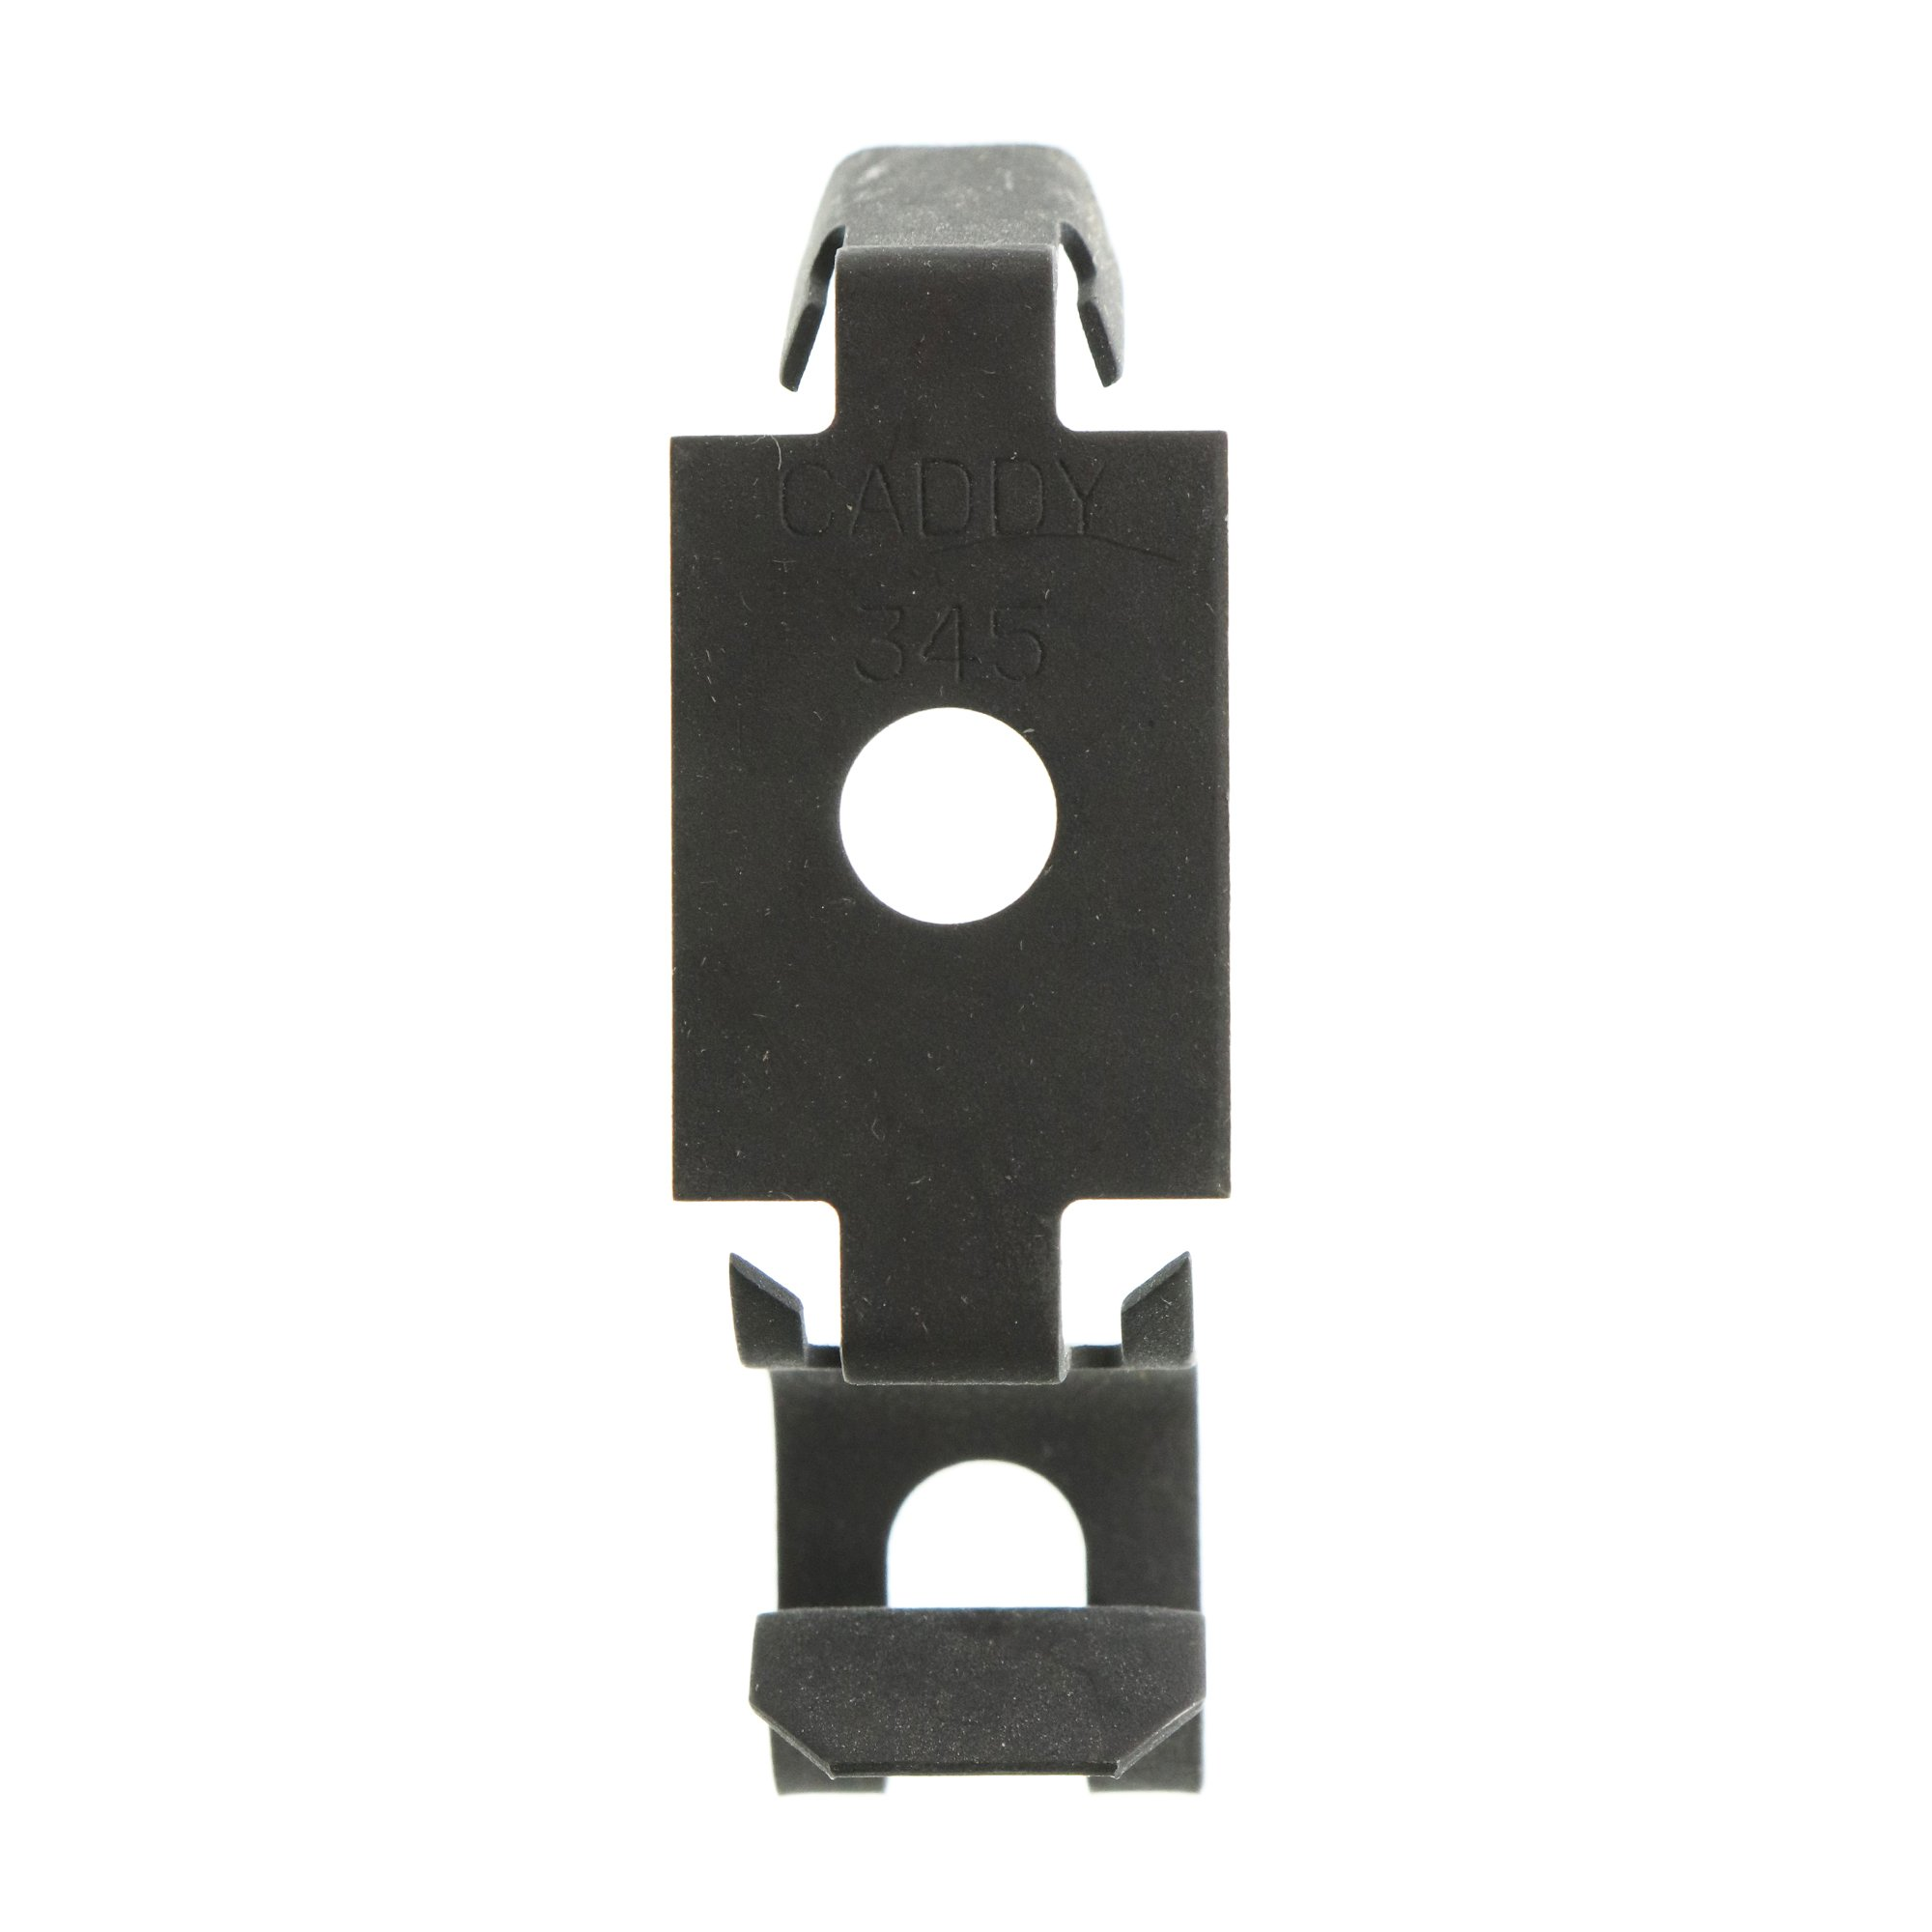 Erico Caddy 345 MC, AC, or BX to Metal or Wood Stud Cable Clip, (100-Pack)